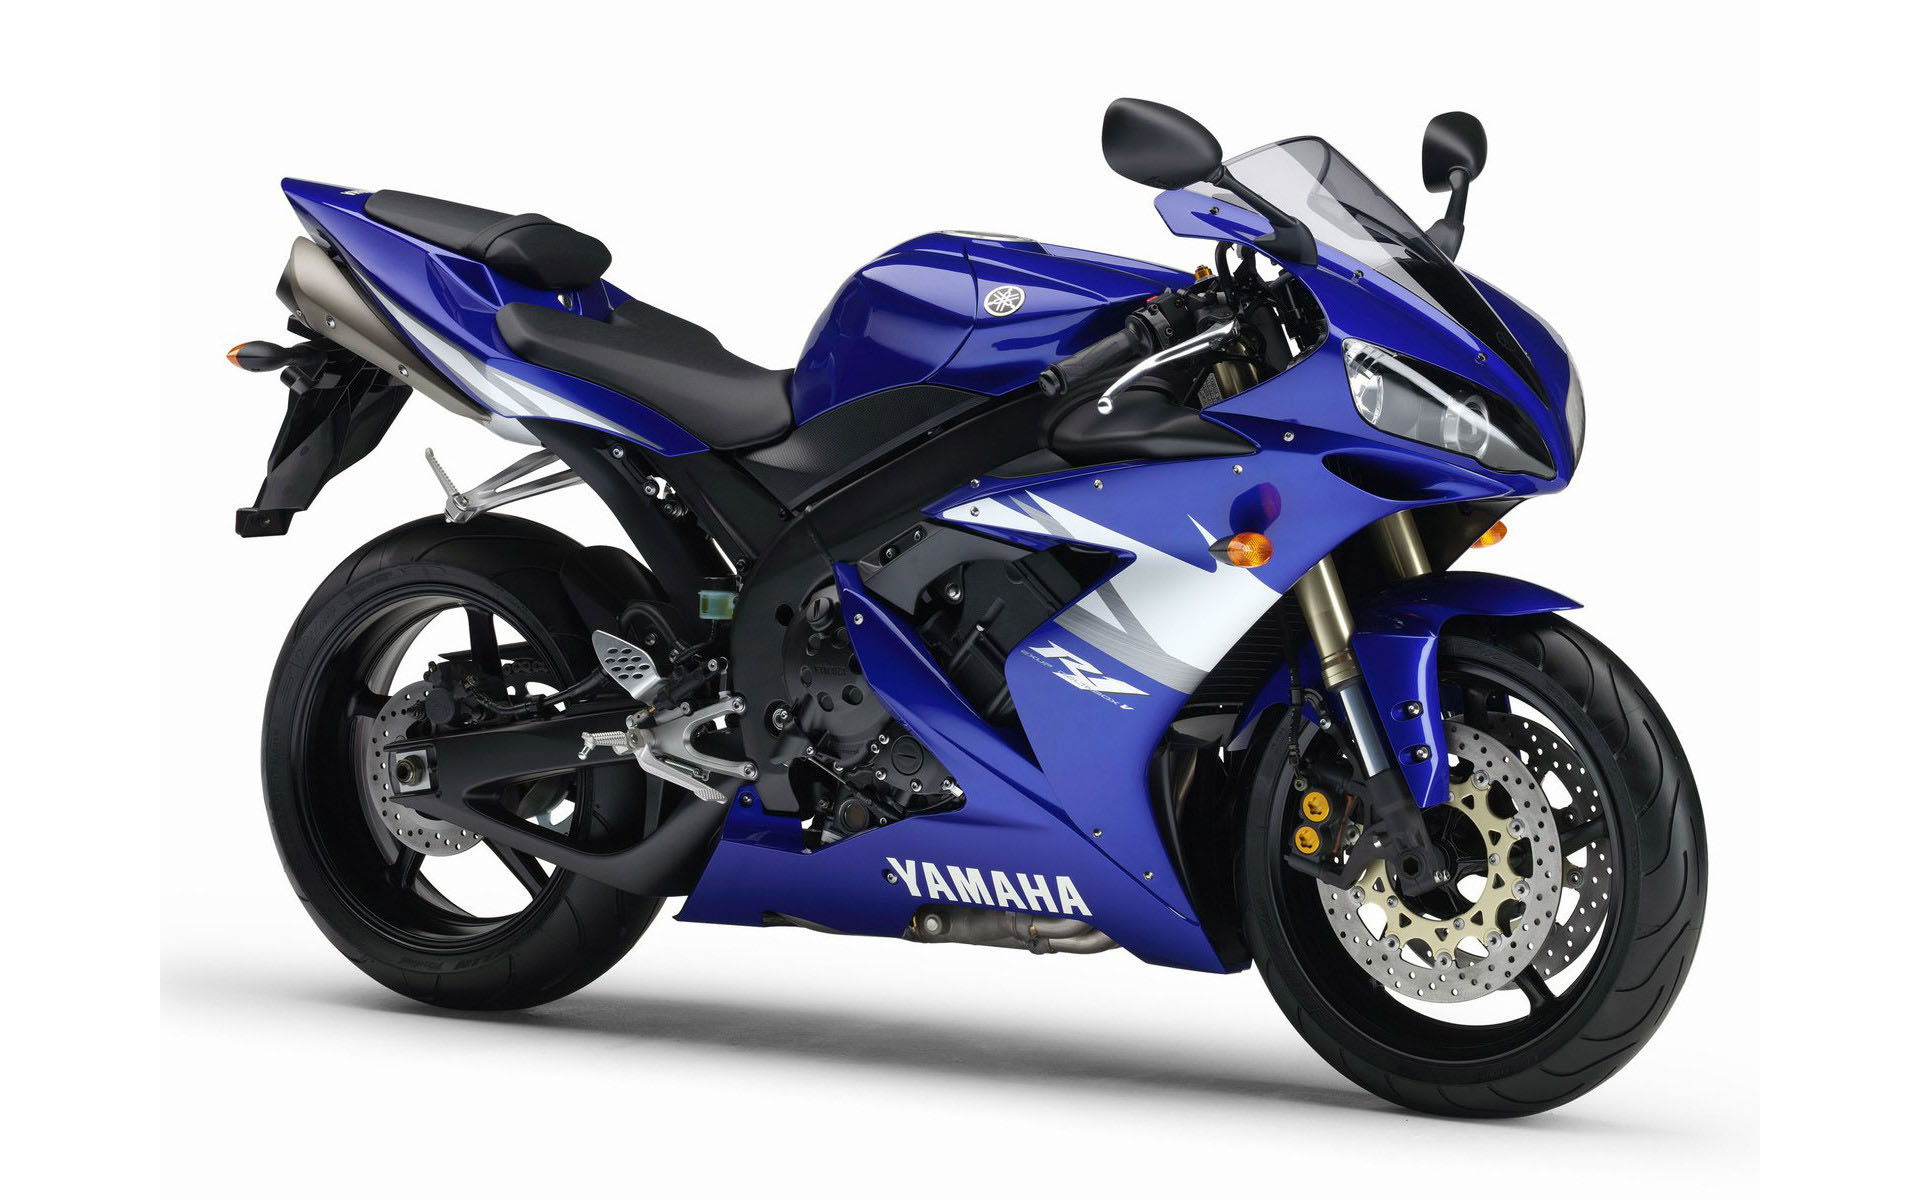 pc wallpaper Yamaha R1 1600x1200